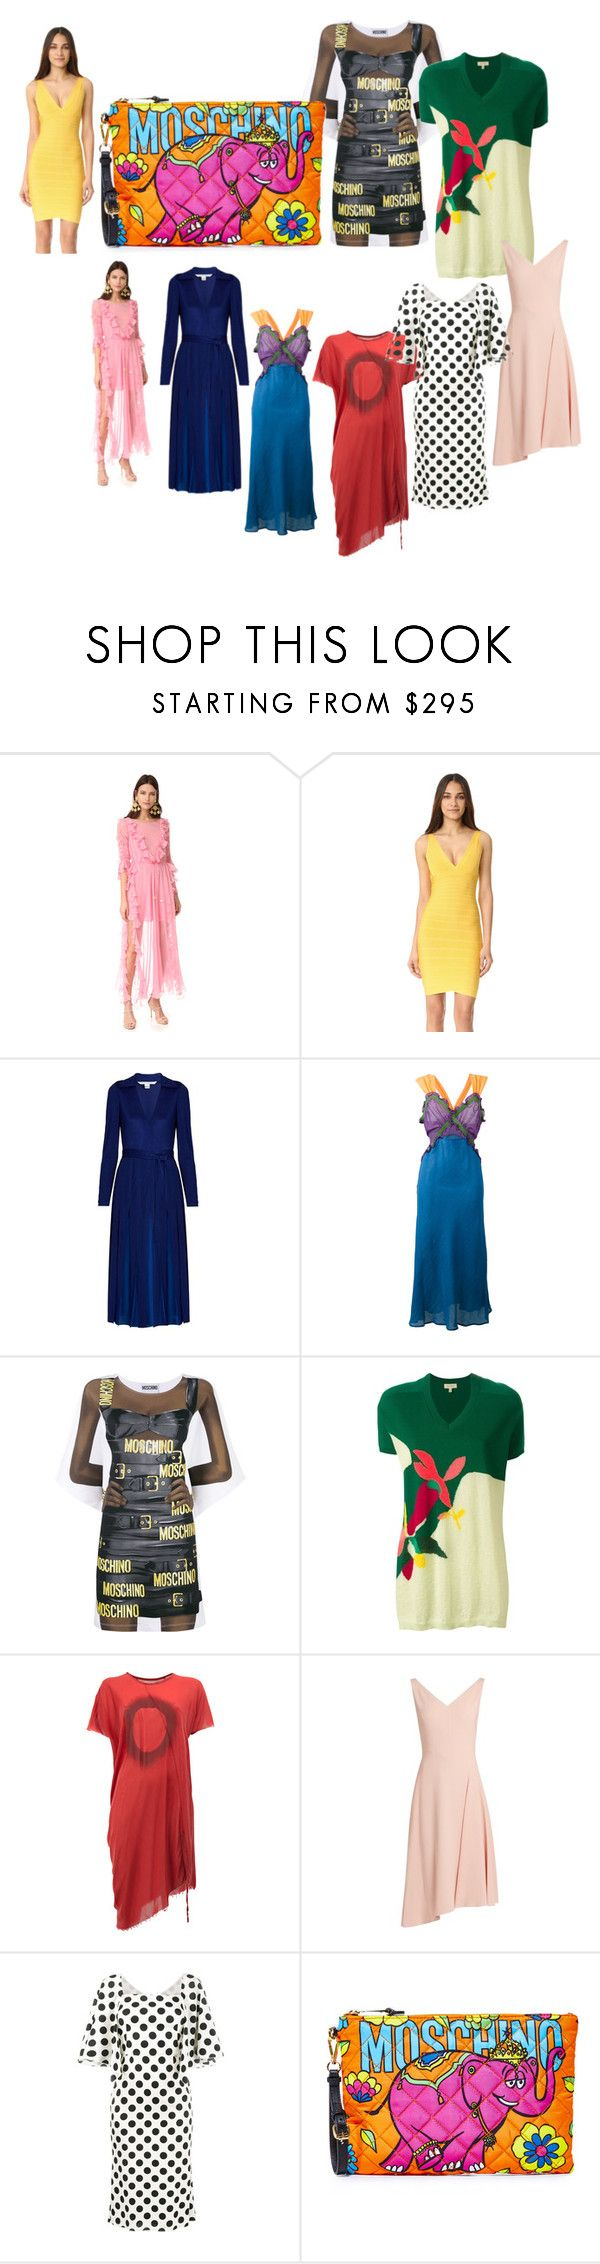 """big sale offer"" by denisee-denisee ❤ liked on Polyvore featuring Preen, Hervé Léger, Diane Von Furstenberg, Attico, Moschino, Delpozo, Lost & Found, Osman, Dolce&Gabbana and vintage"